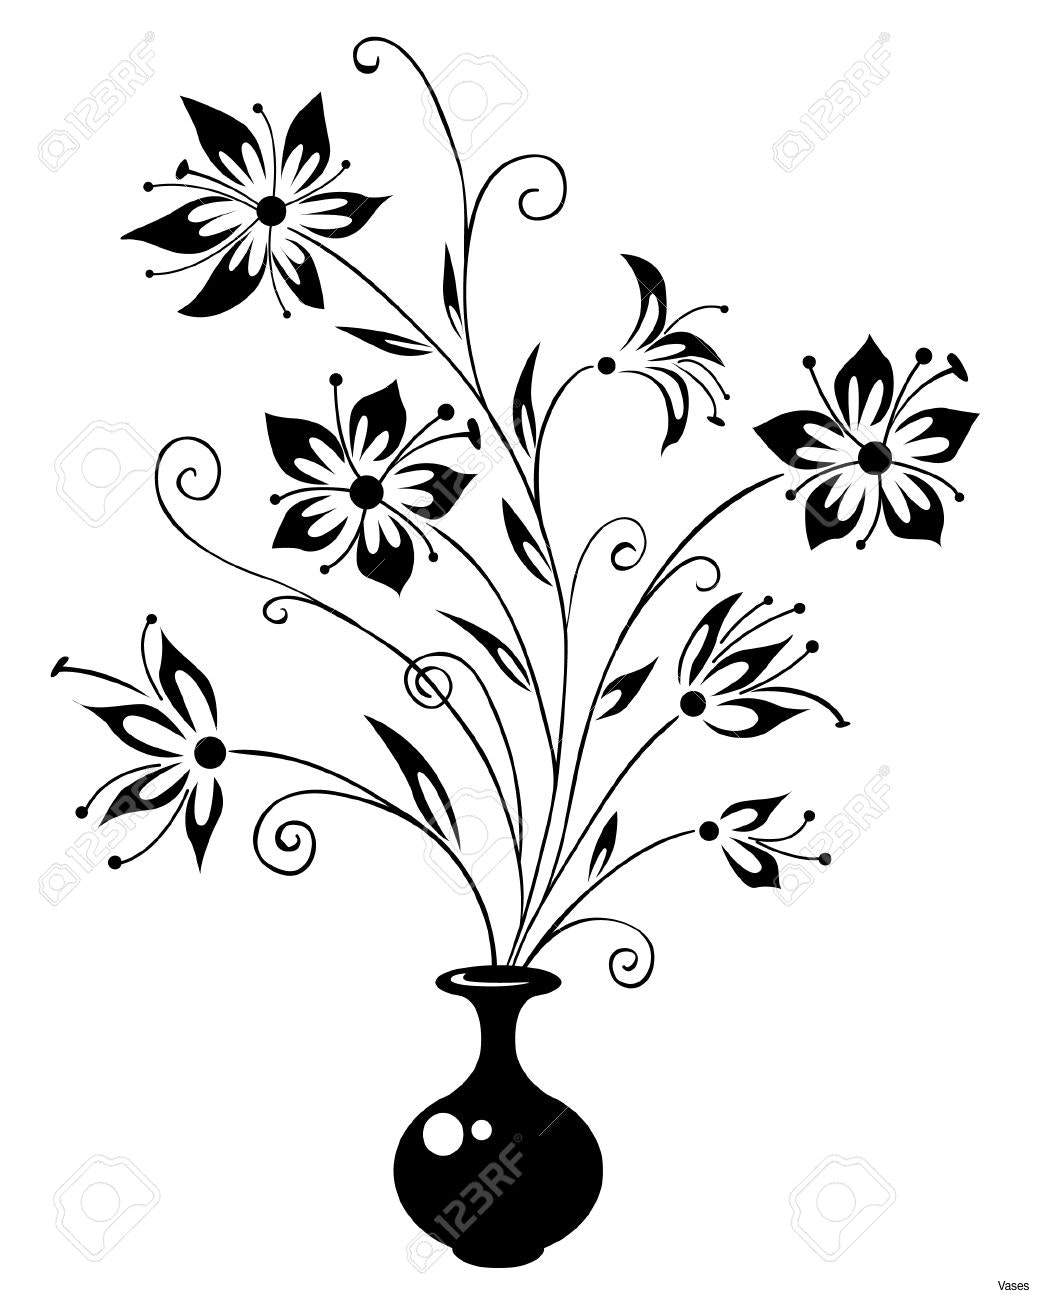 1040x1300 Still Life Drawings Flowers In Pencil Drawing Flower Vase